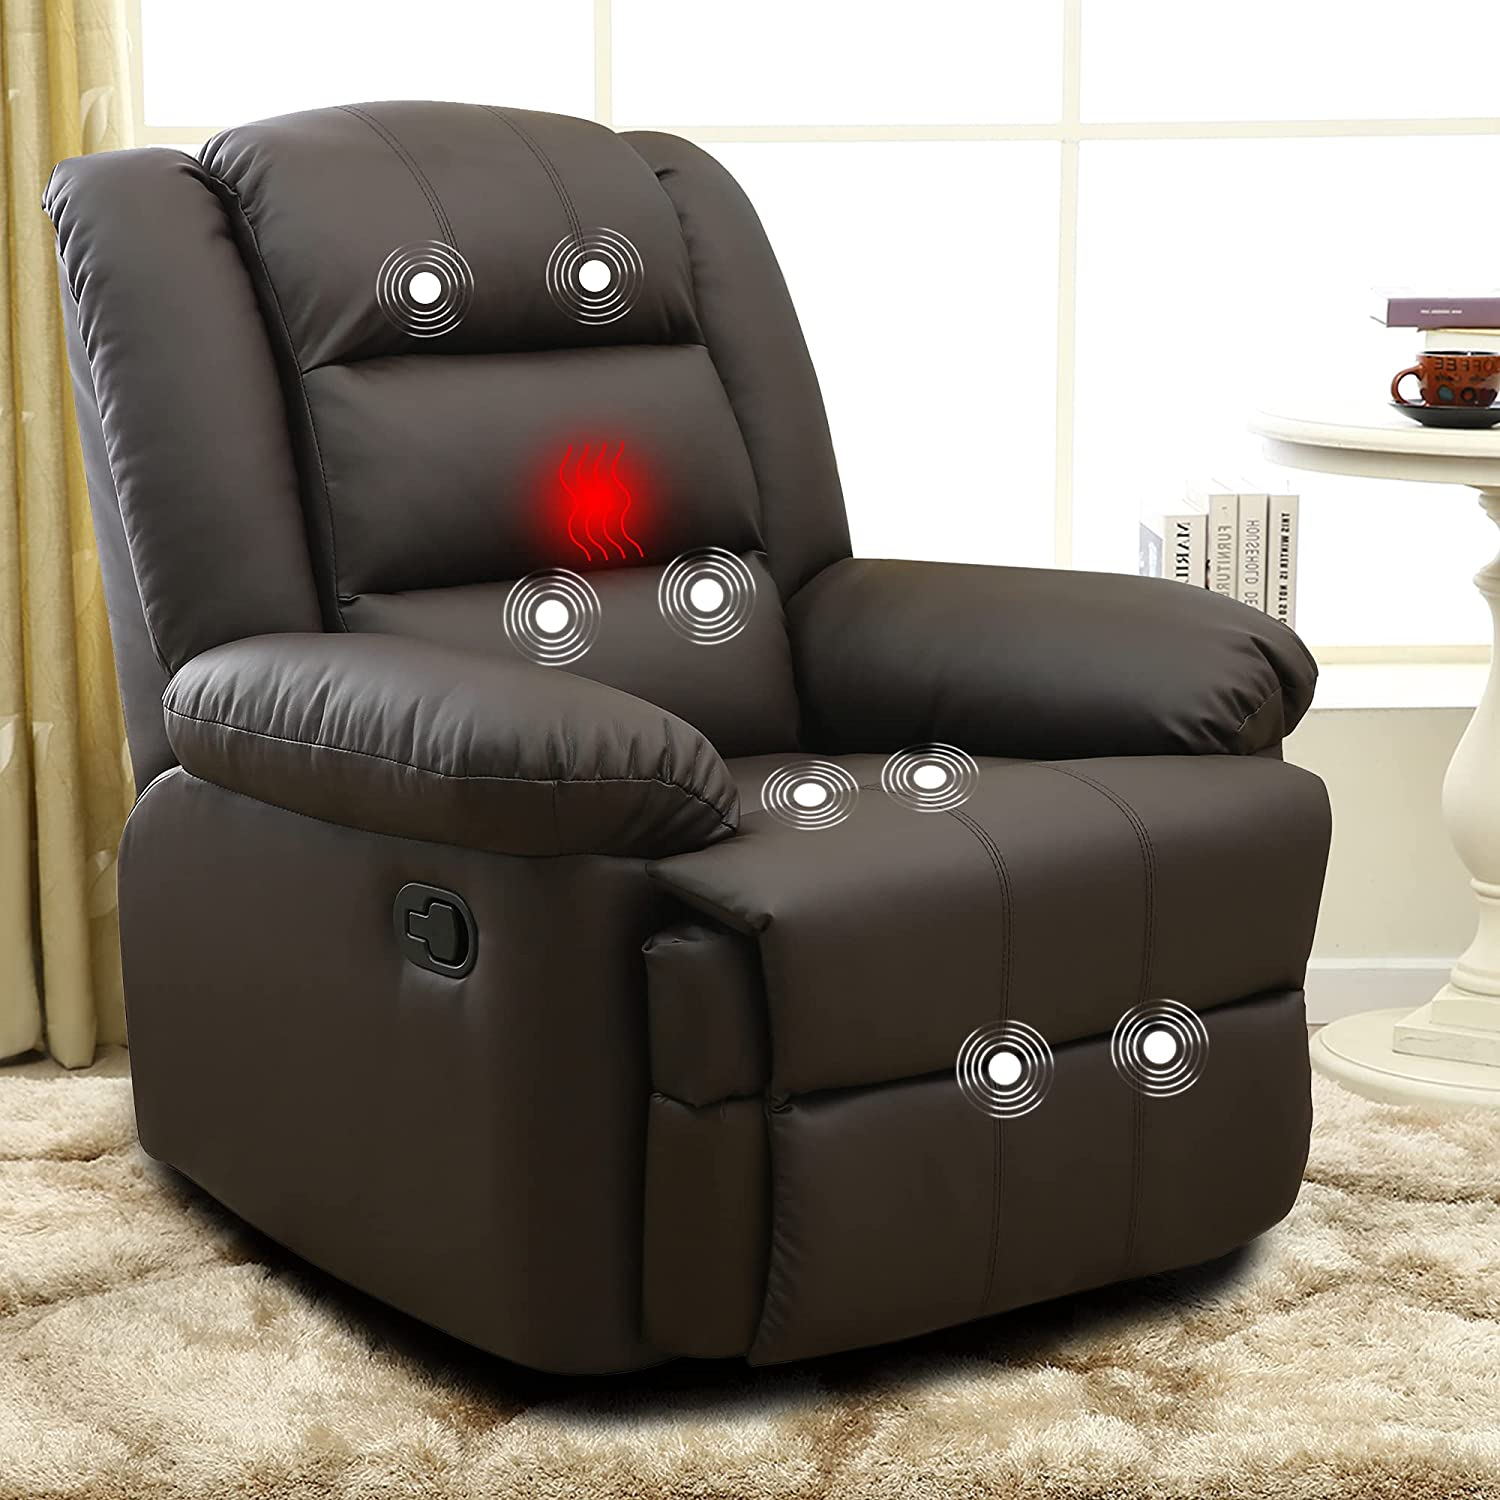 XRHOM Recliner Chair Reading Massage Chair Heated PU Leather Ergonomic Reclining Chair Living Room Chairs Single Power Sofa Recliner Adjustable Modern Home Theater Seating Padded Seat Backrest,Brown